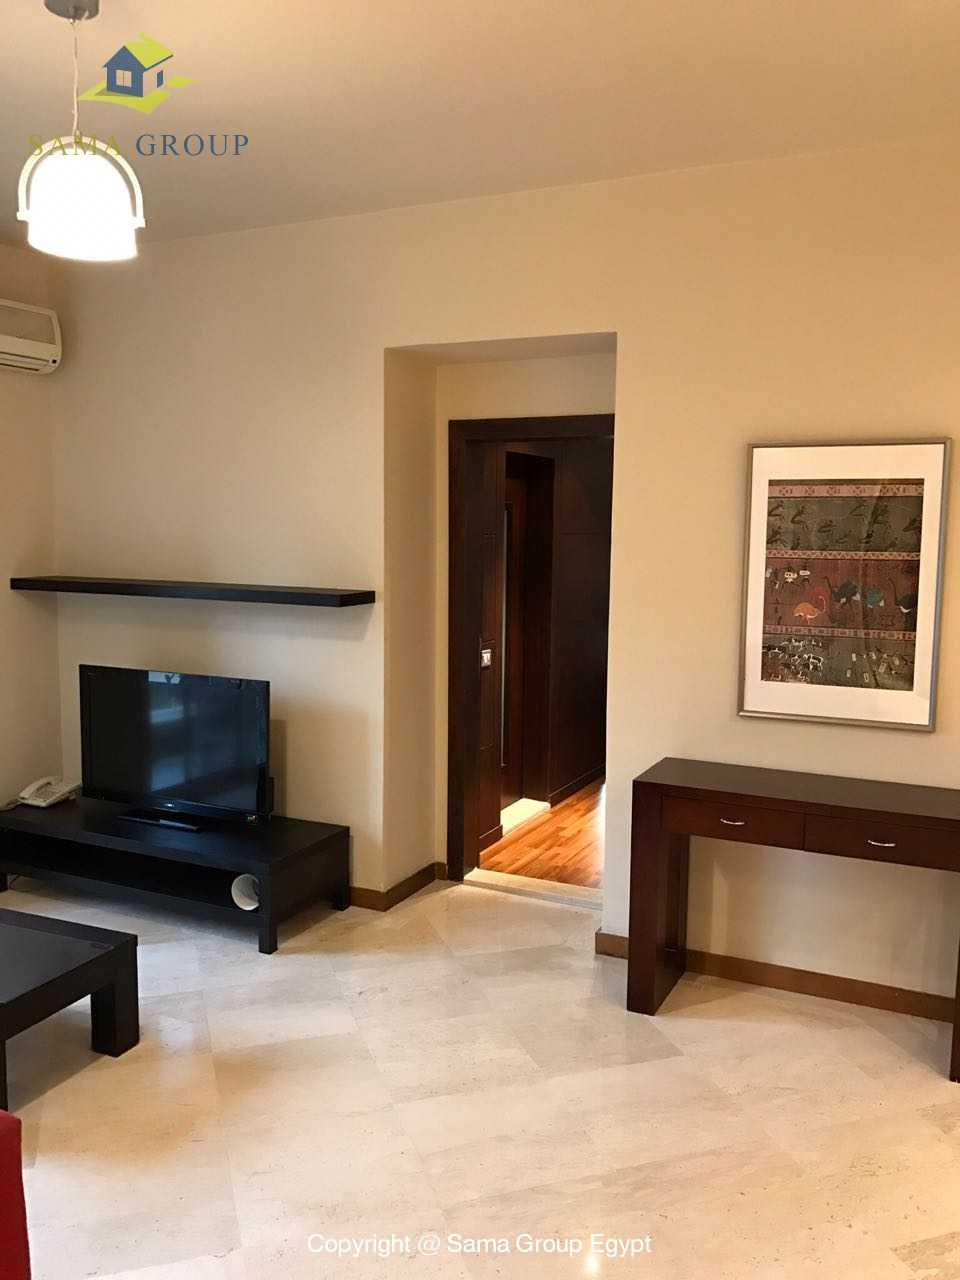 Brand New Modern Apartment For Rent In Maadi,Modern Furnished,Apartment NO #18